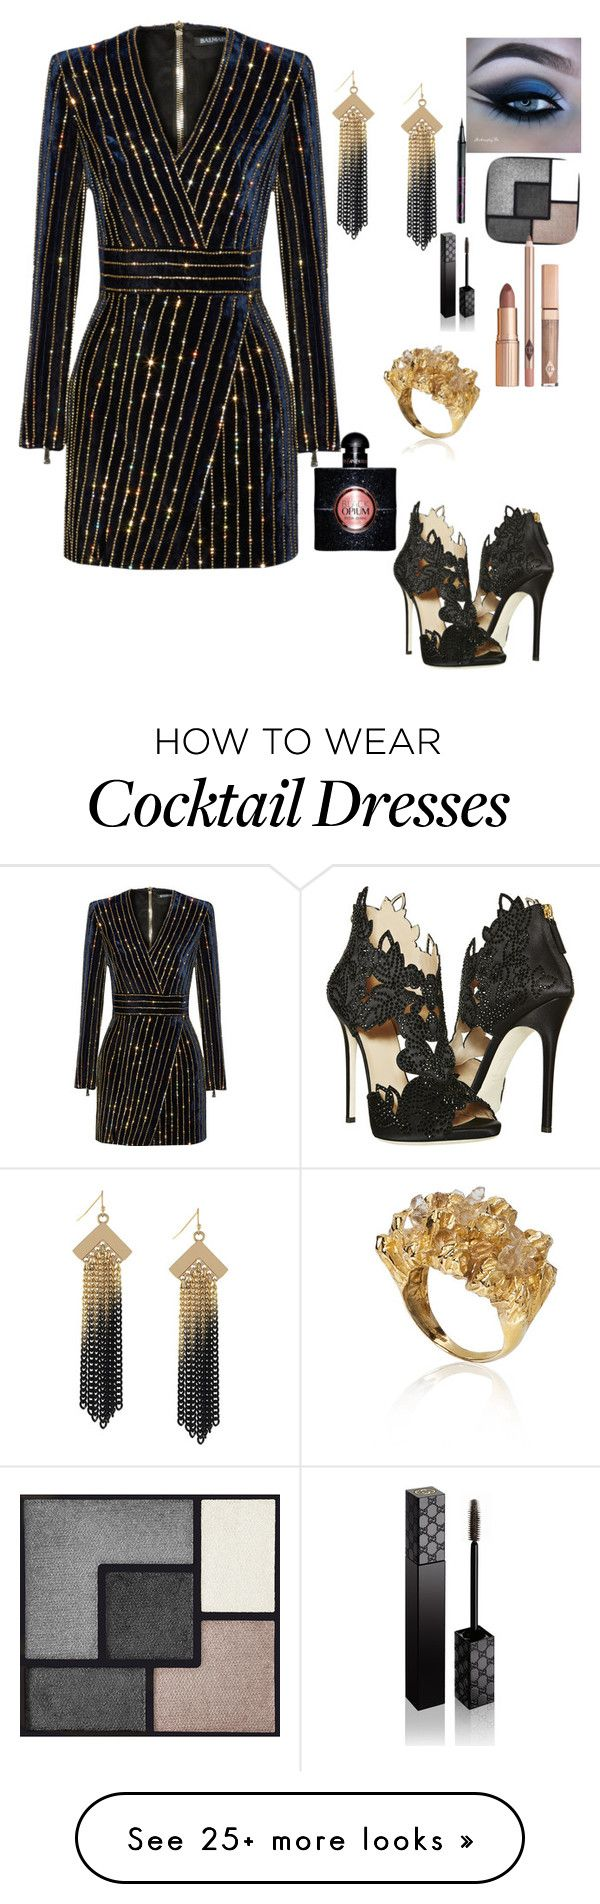 """Untitled #1468"" by greenrain on Polyvore featuring Balmain, La Perla, Nicole By Nicole Miller, Niza Huang, Barry M, Yves Saint Laurent and Gucci"